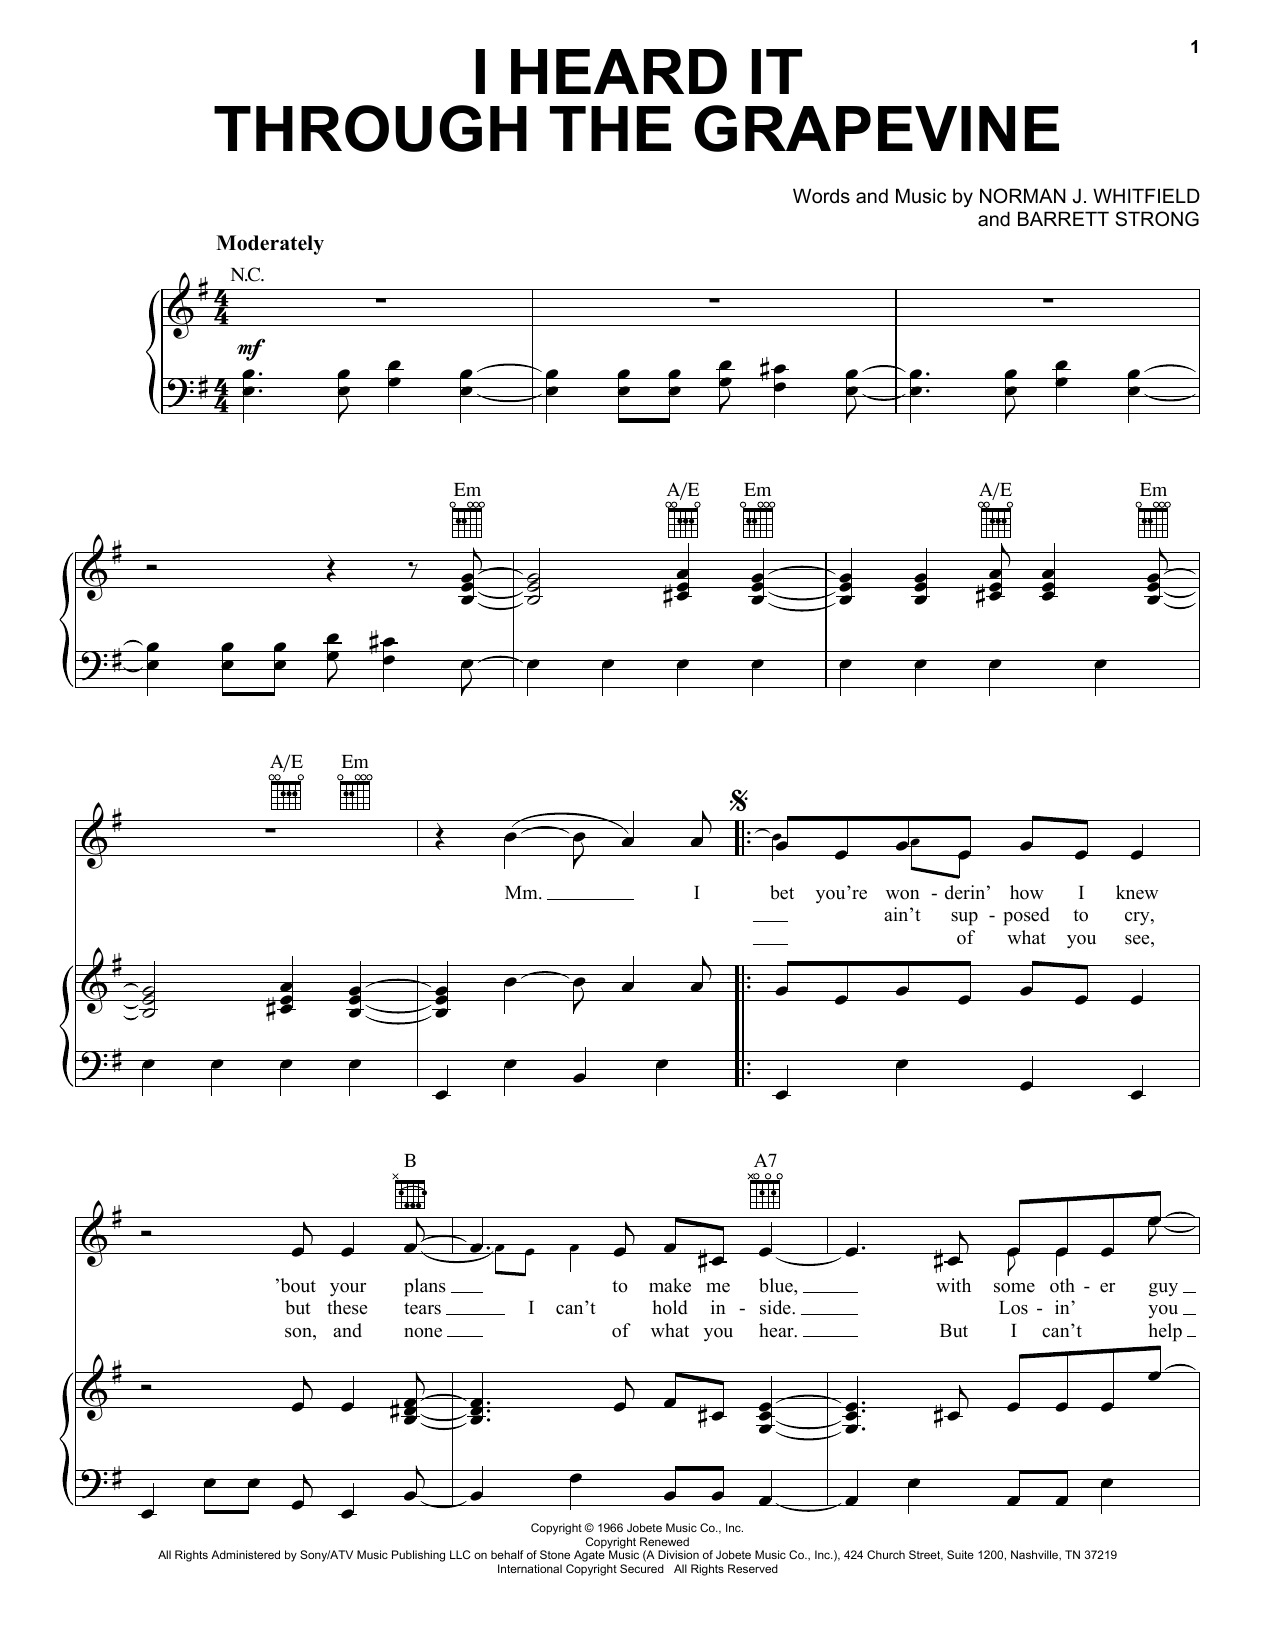 Marvin Gaye I Heard It Through The Grapevine sheet music notes and chords. Download Printable PDF.